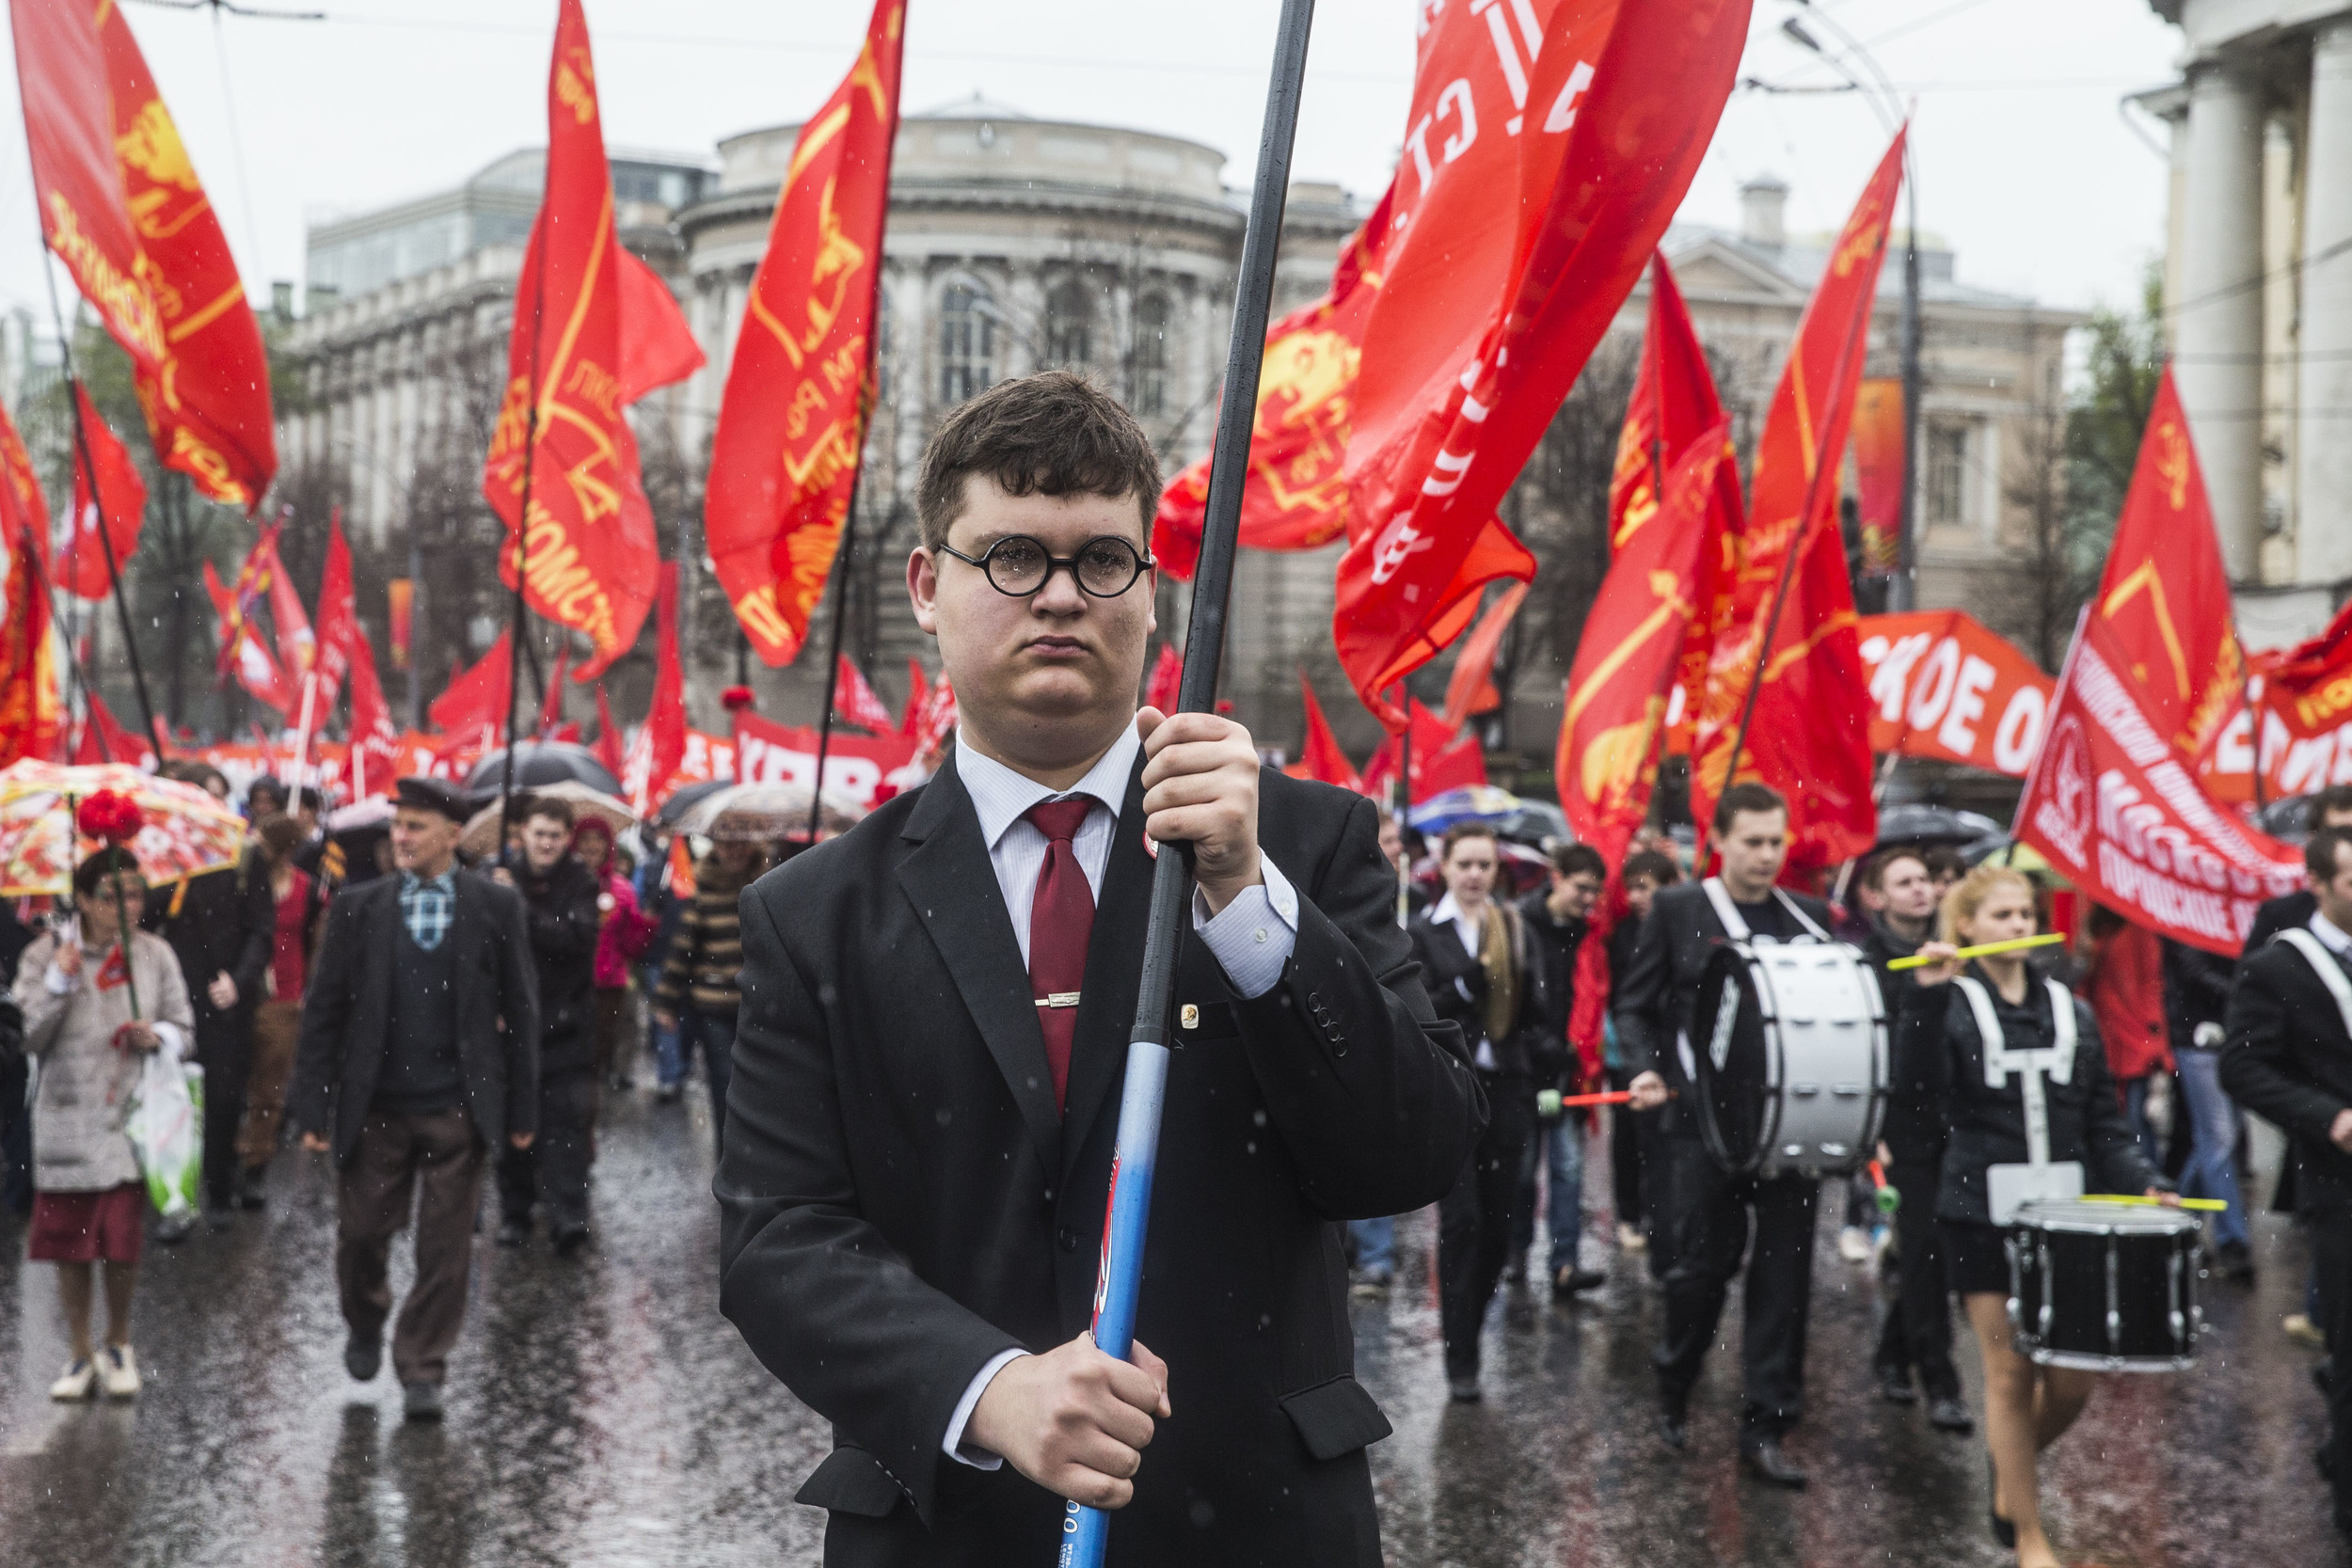 May Day 2015 demonstration held by Communist party